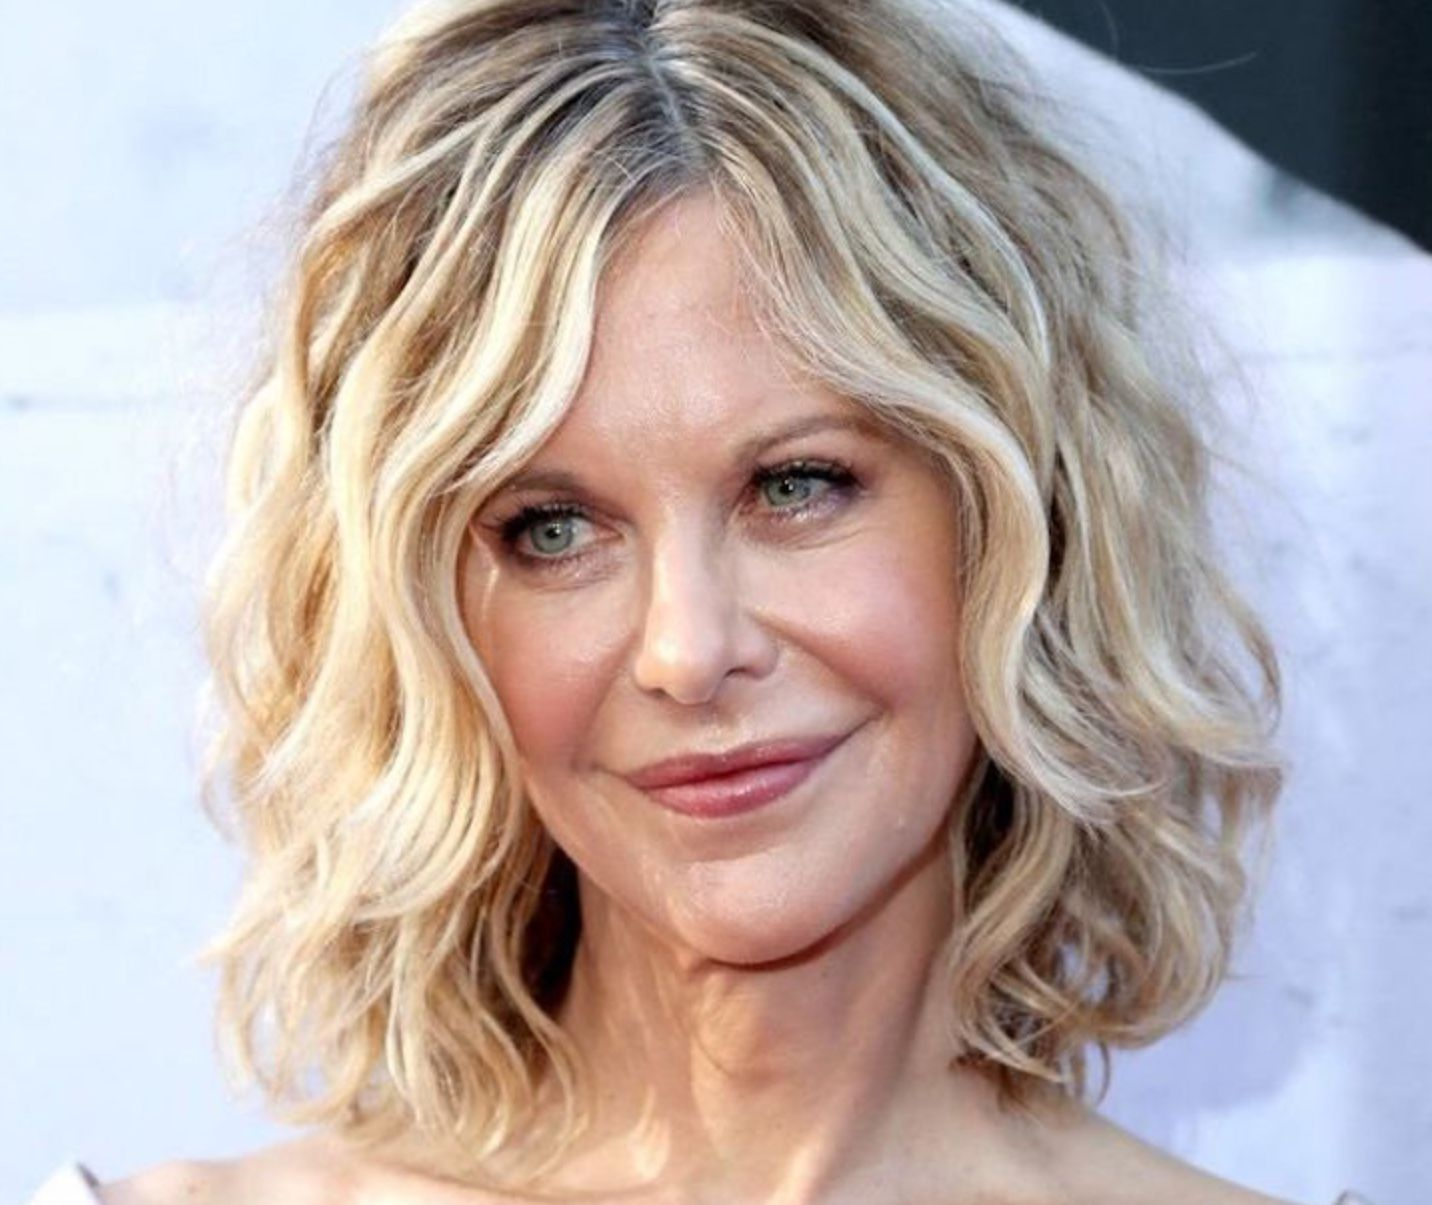 Cheat your age without spending much money on plastic surgery, check out  these 10 chic, young hairstyle looks which help you pick the best look.